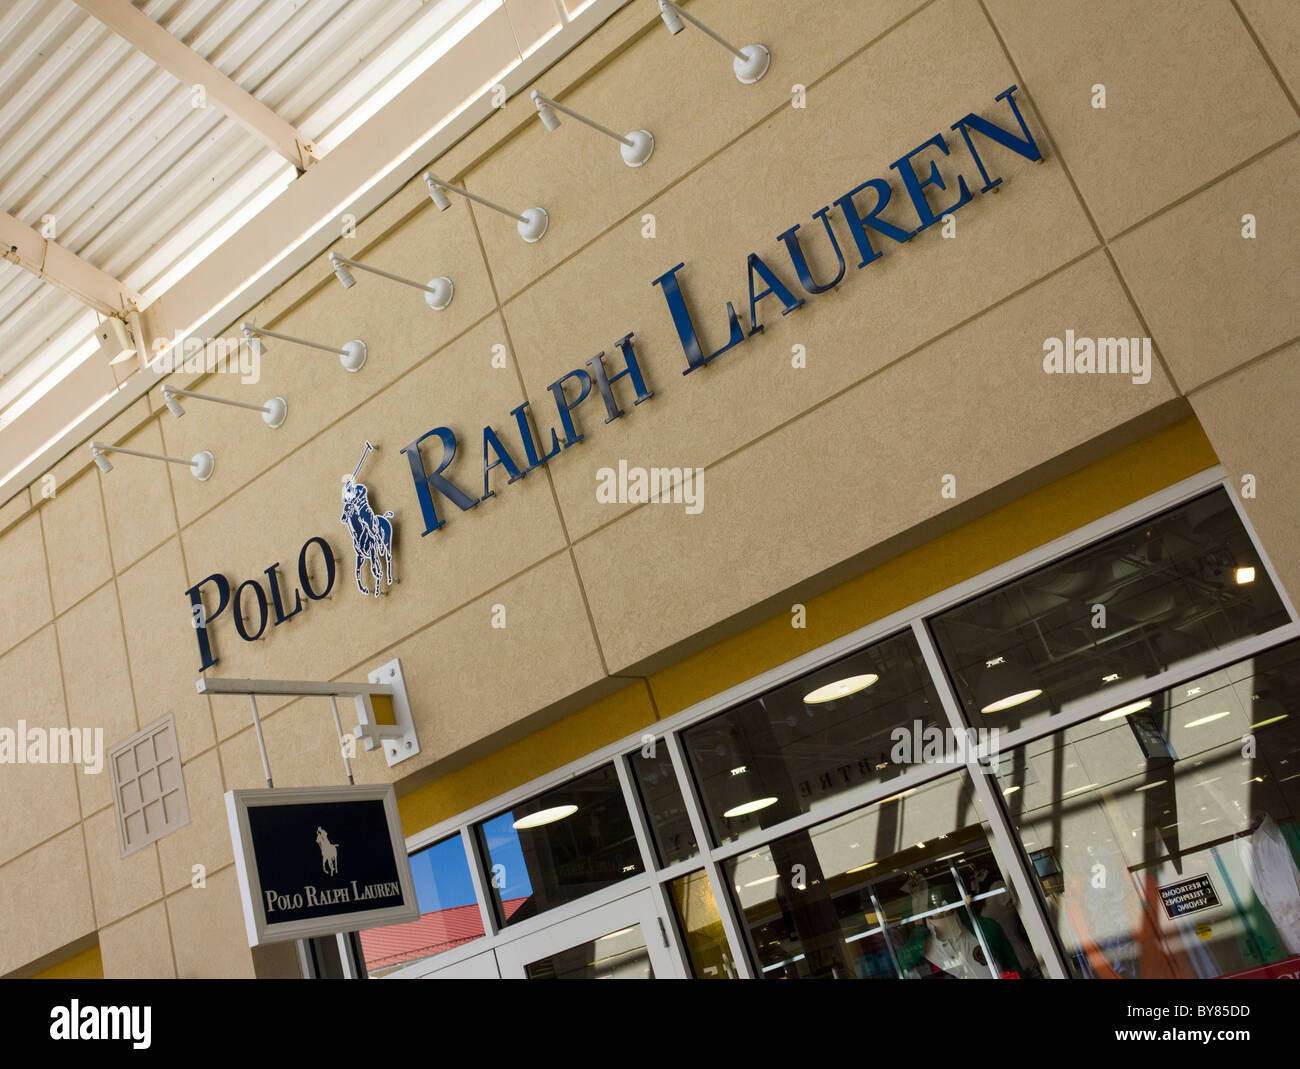 Polo Ralph Lauren Stock Photos   Polo Ralph Lauren Stock Images - Alamy 438aa5f2c0